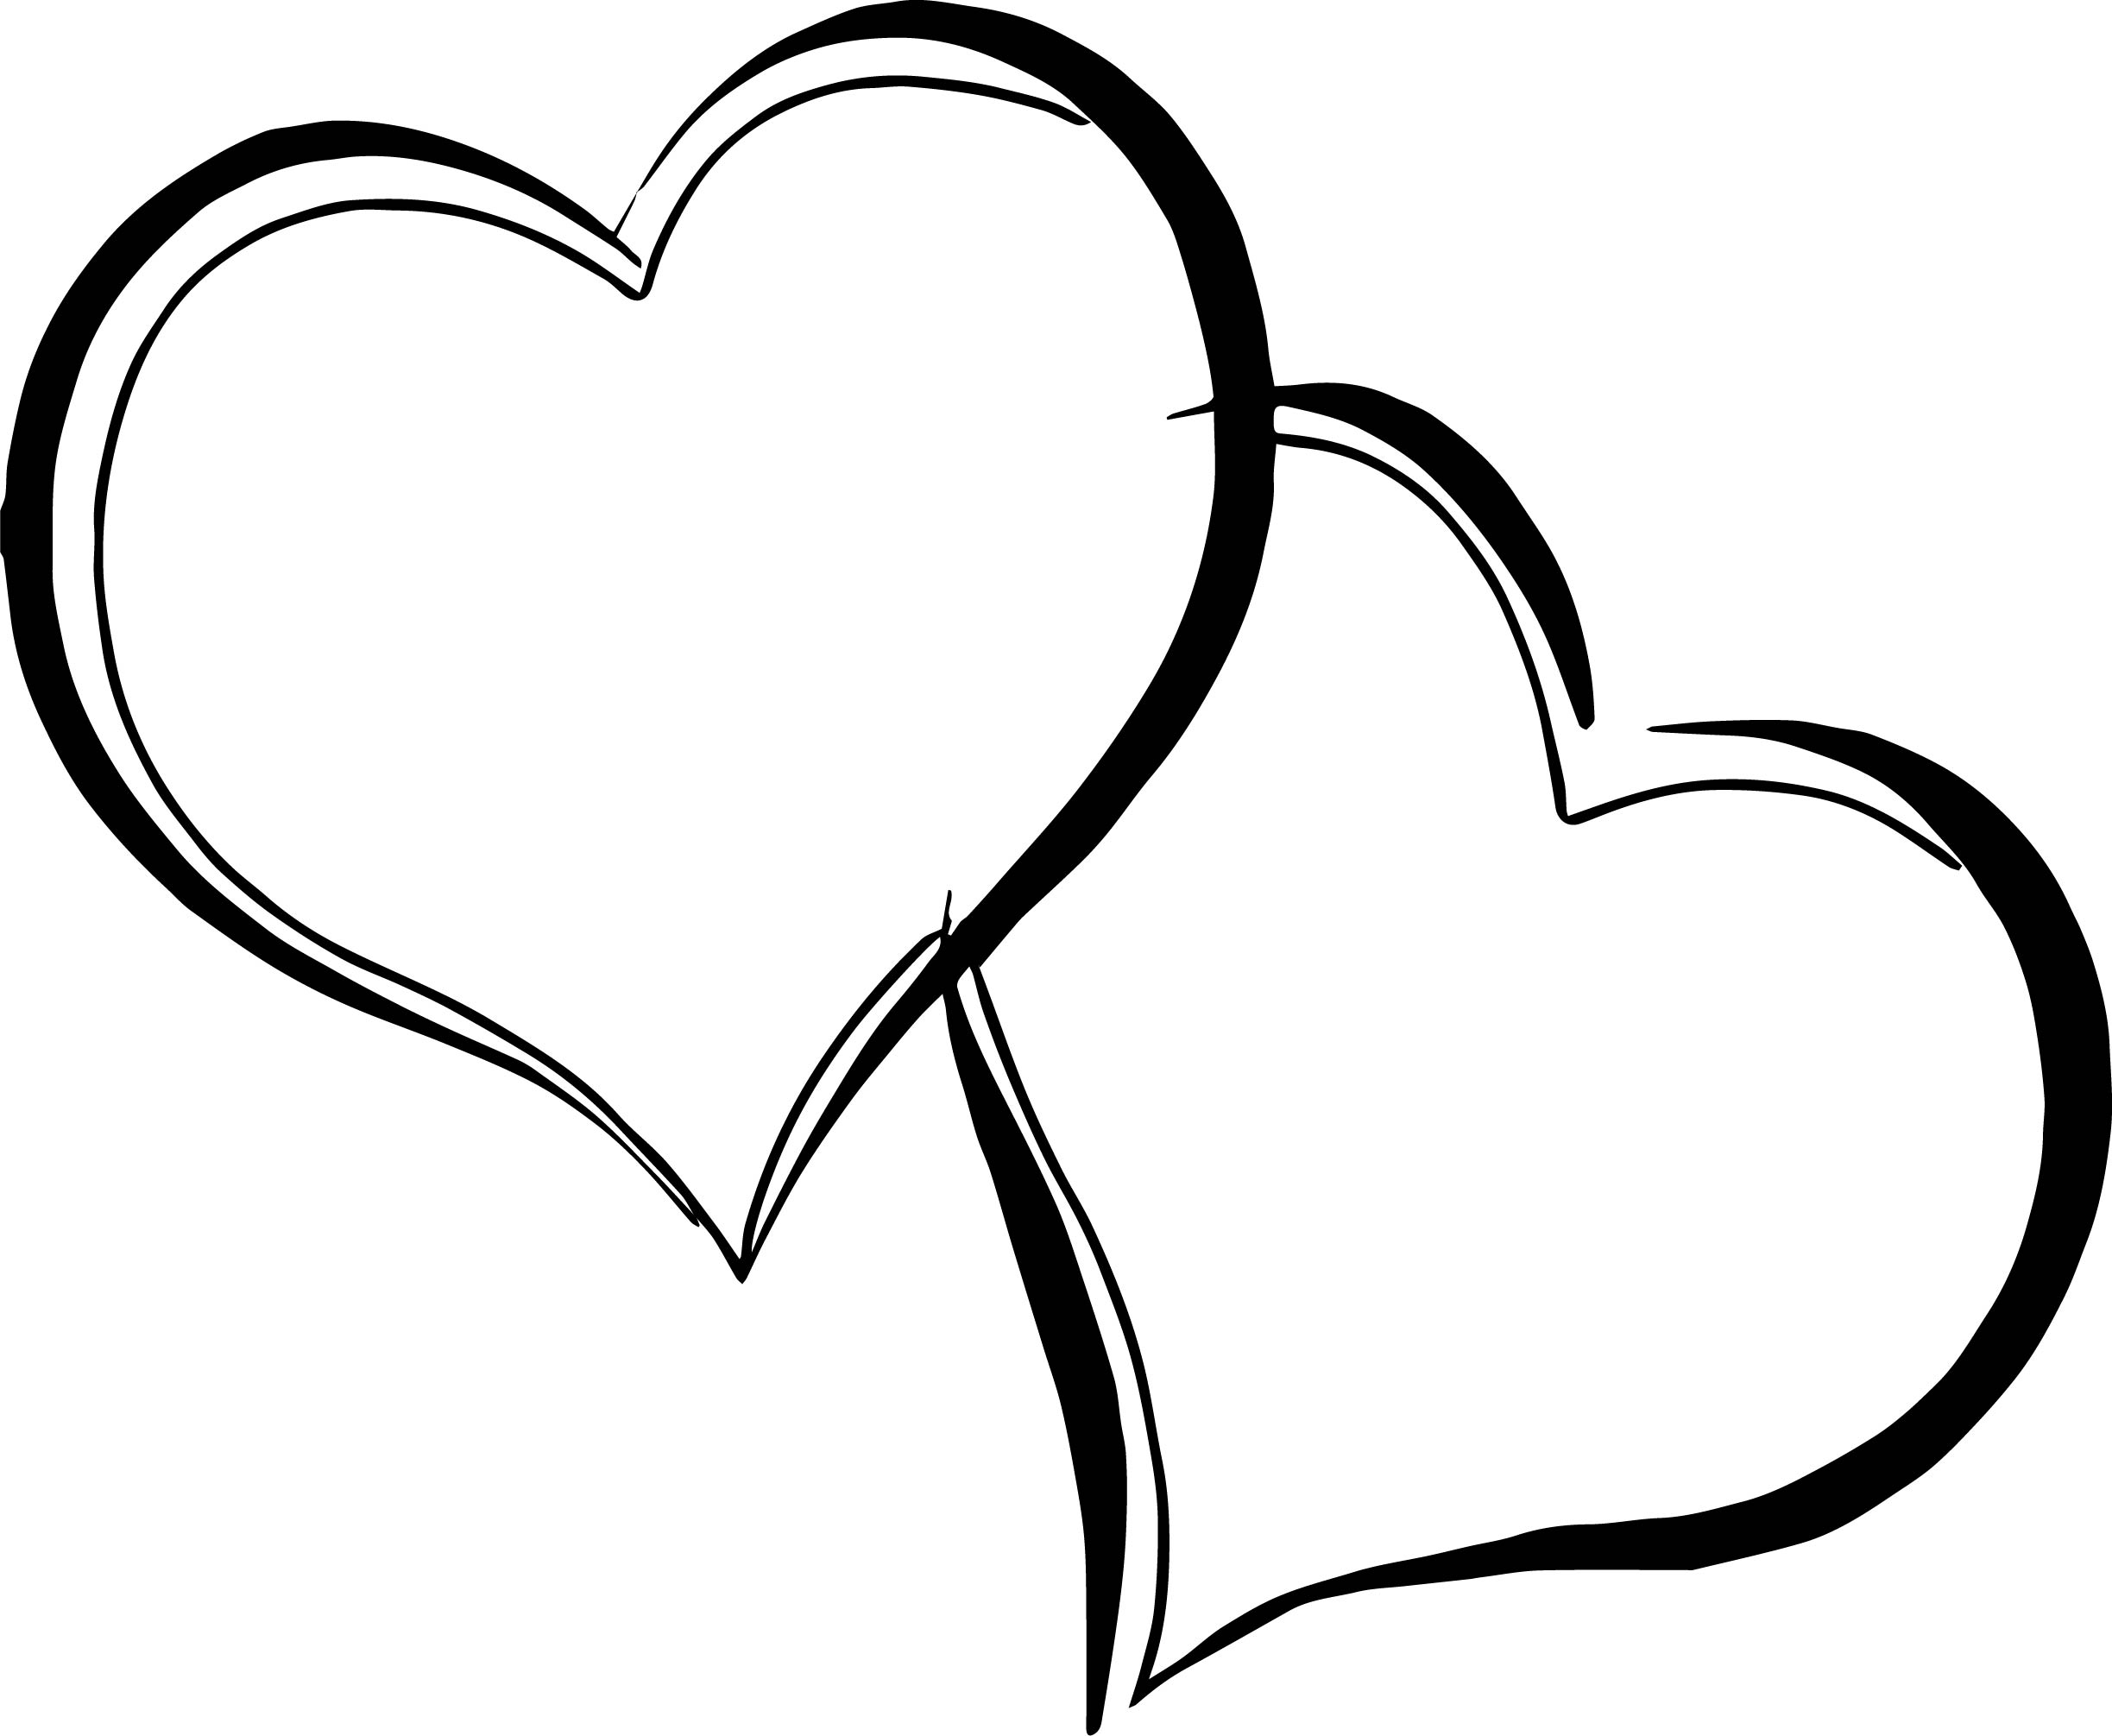 Barbie Heart Coloring Page